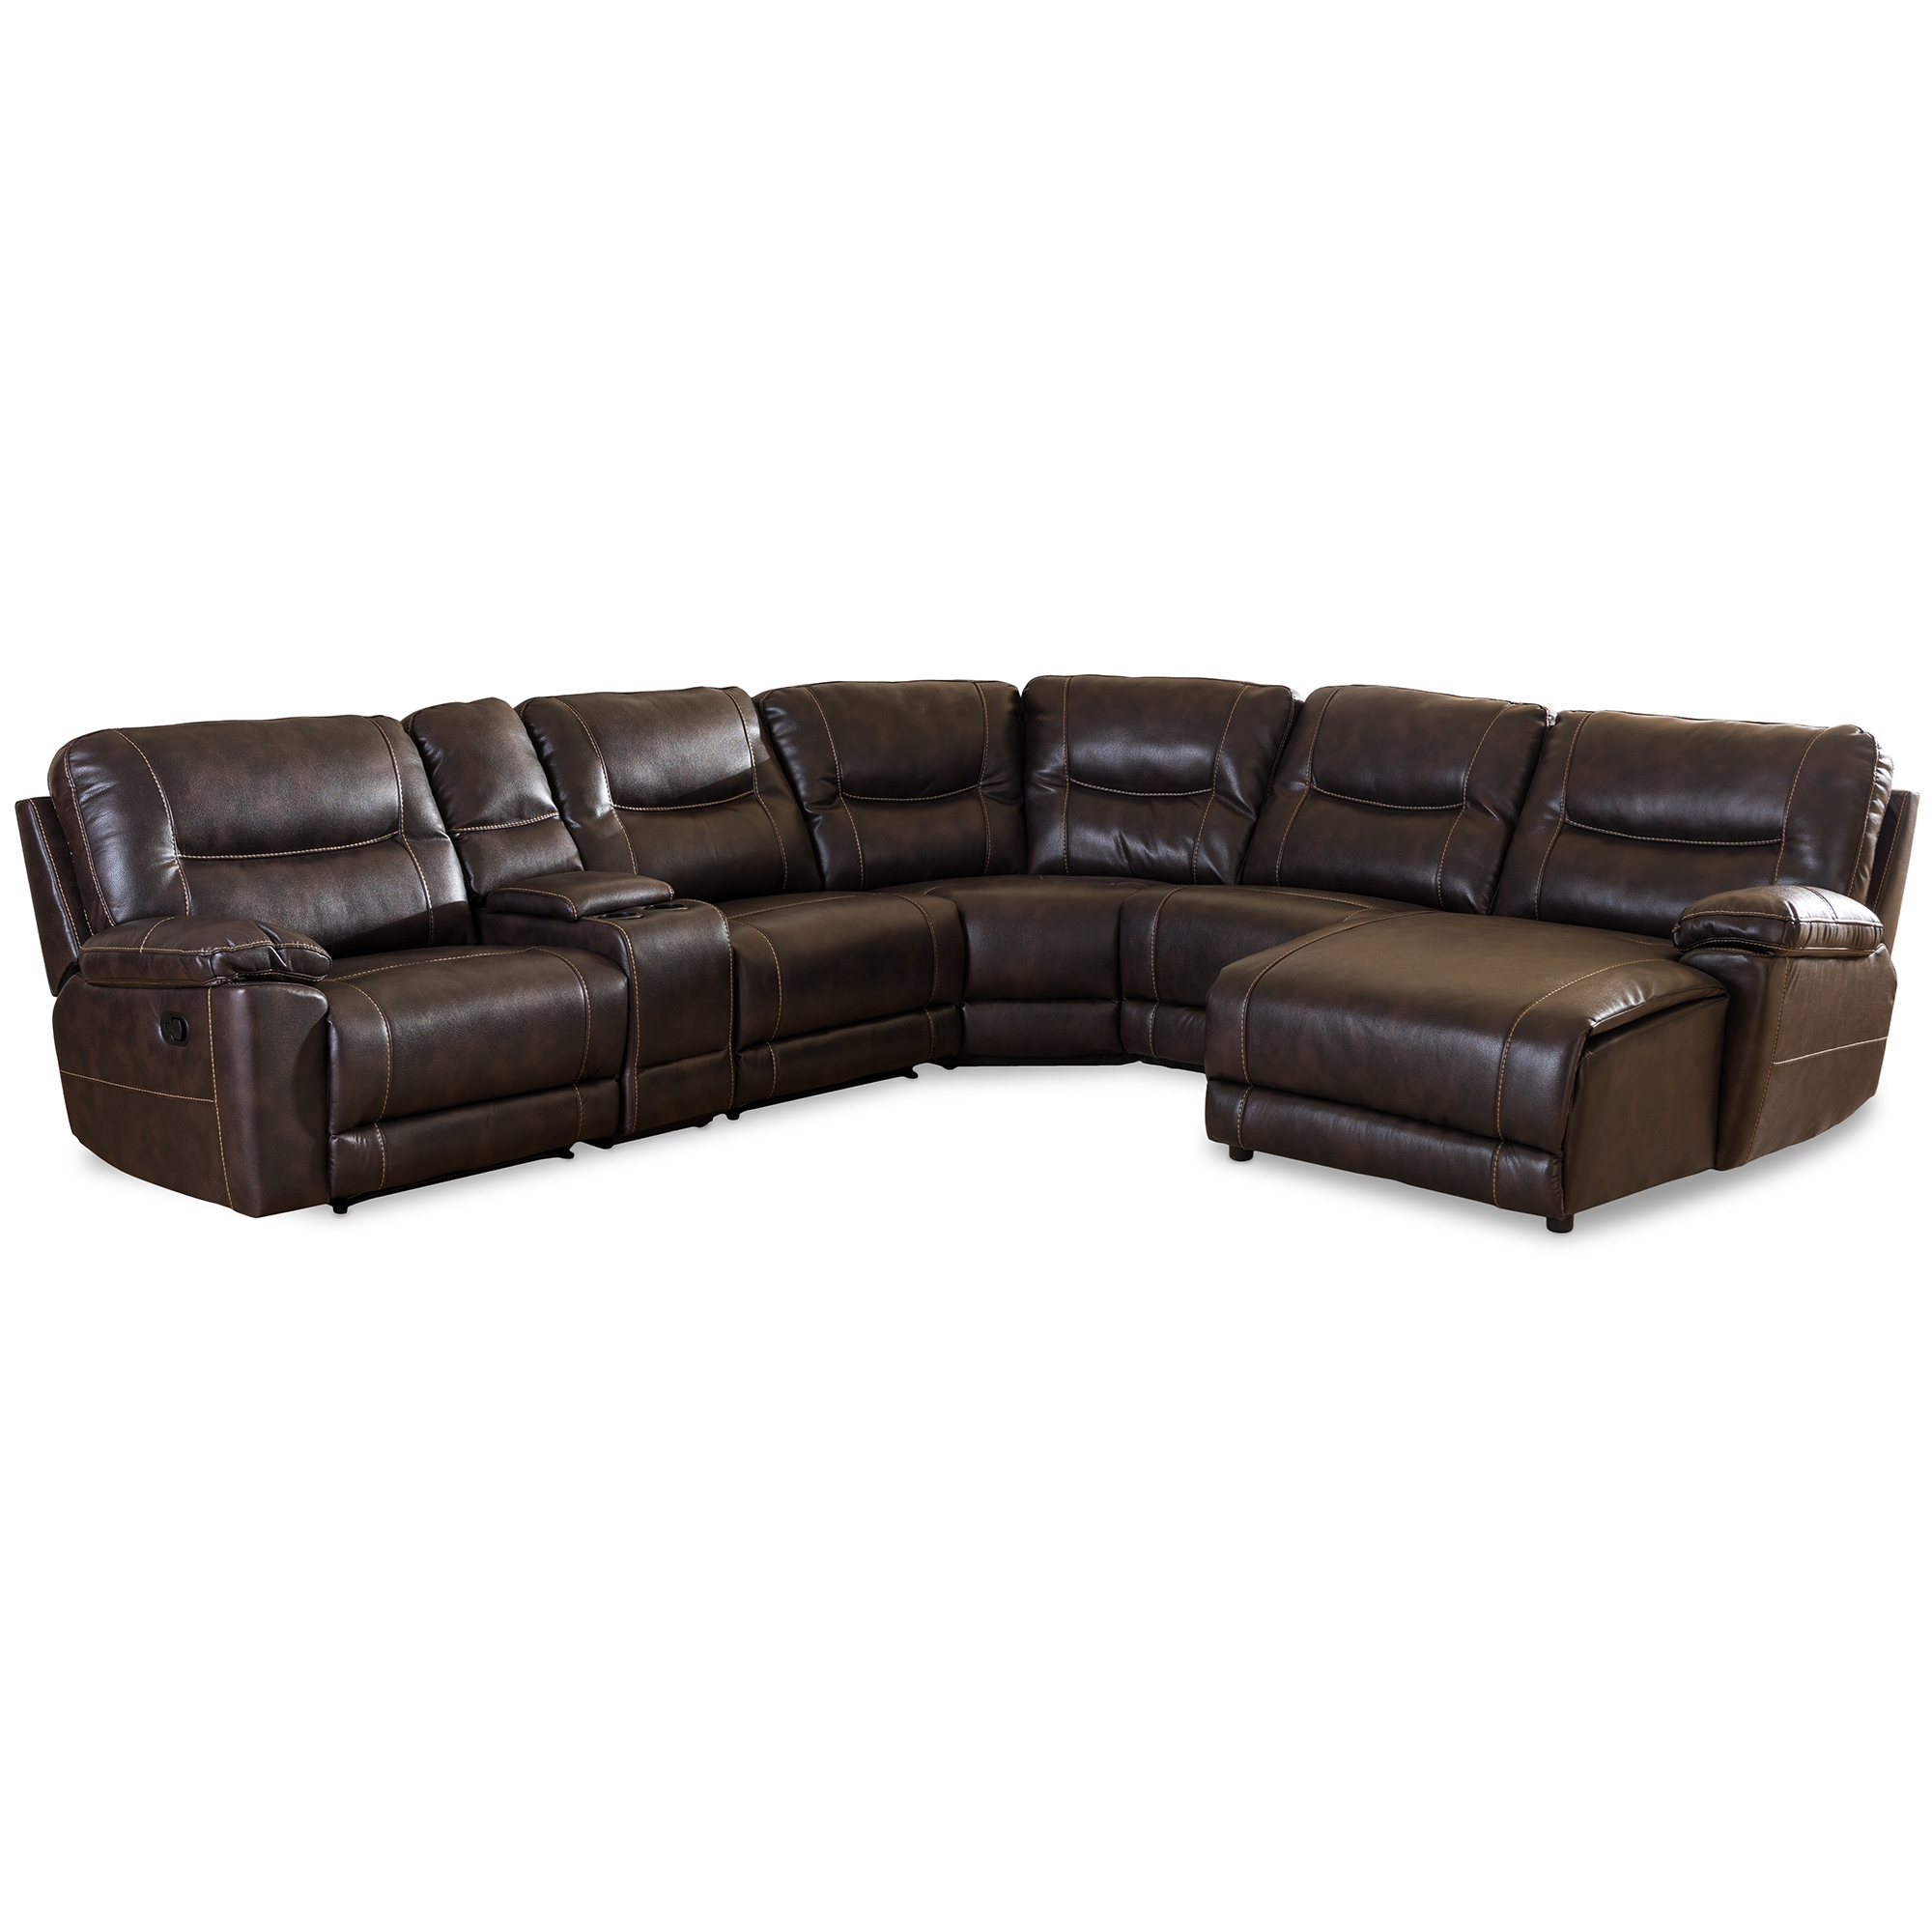 4087 modern bonded leather sectional sofa with recliners lazy boy mackenzie bed baxton studio mistral and contemporary dark brown